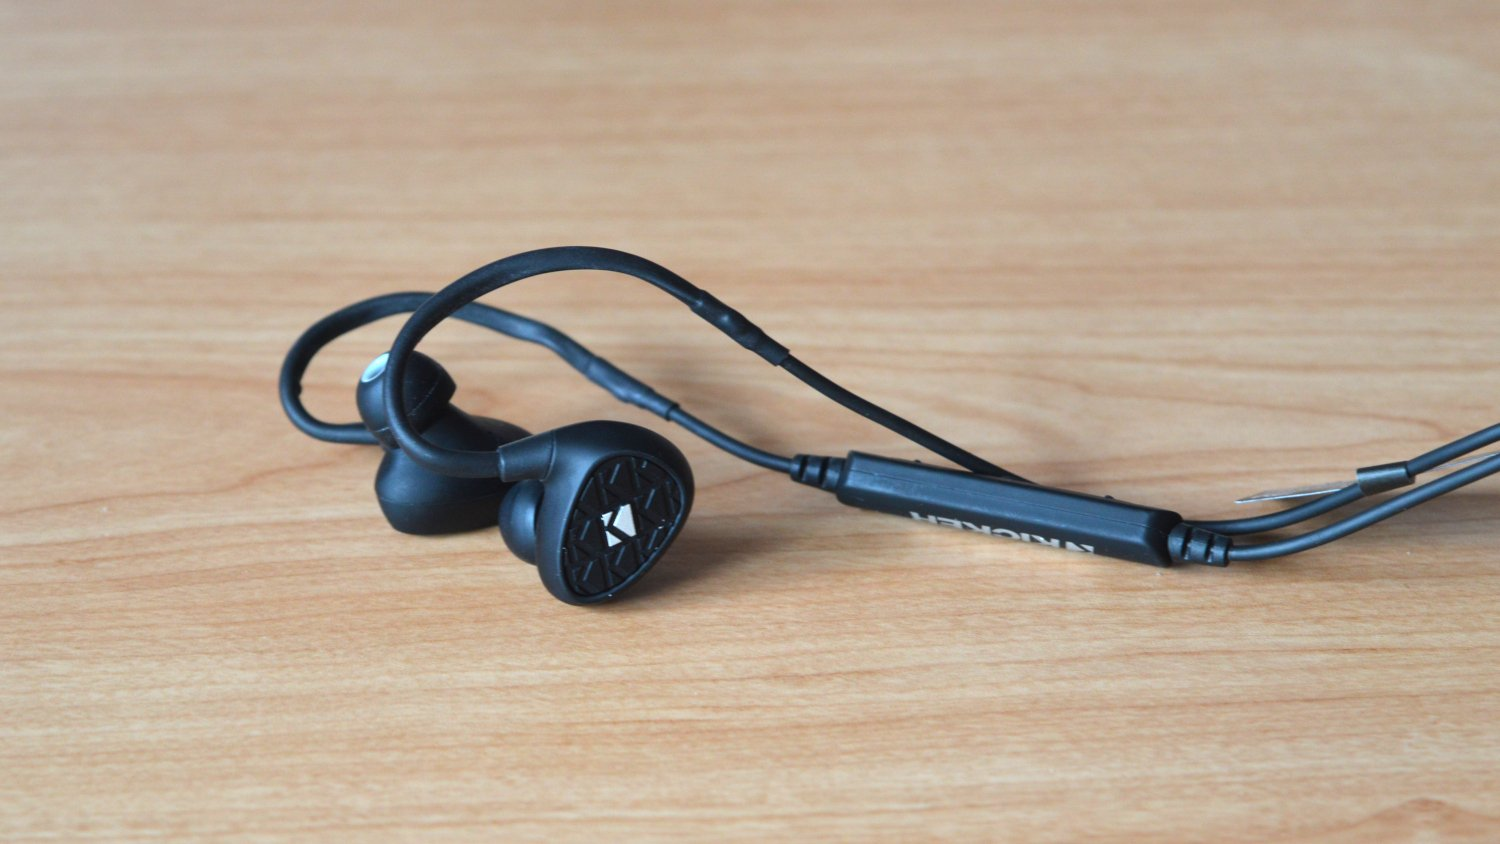 a0f75e914ad Kicker EB400 In-Ear Wireless Headphones Review - Headphone Review